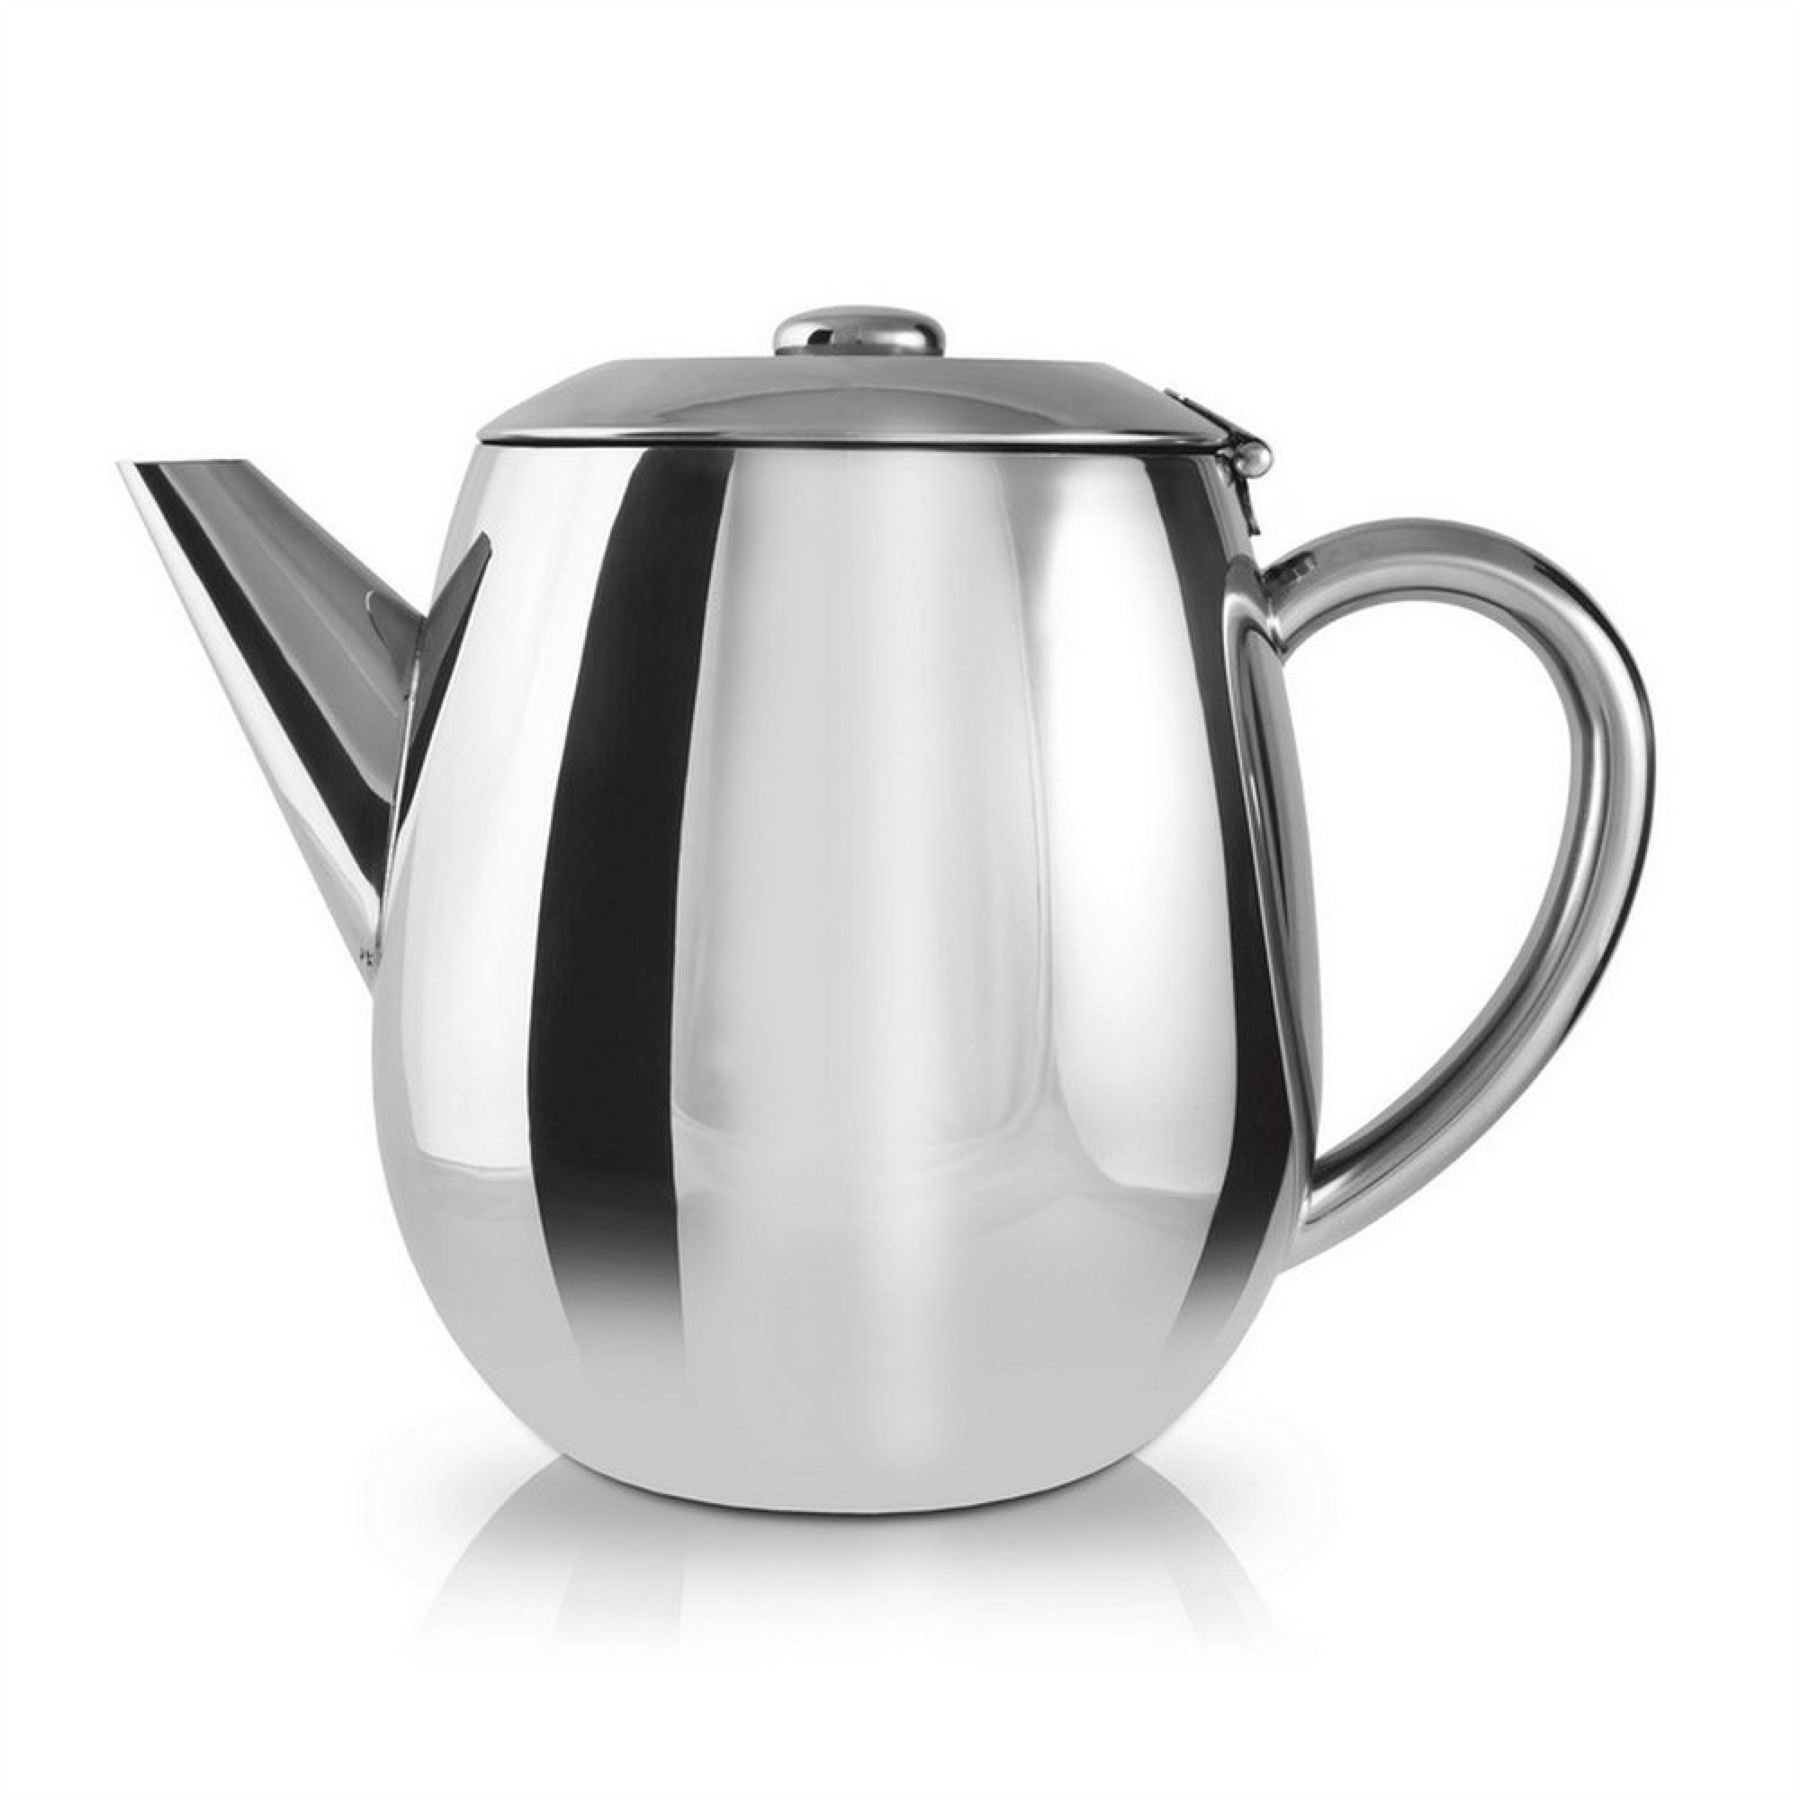 Grunwerg Cafe Ole Everyday Stainless Steel Teapot Tea Pot 1 Litre 35fl oz